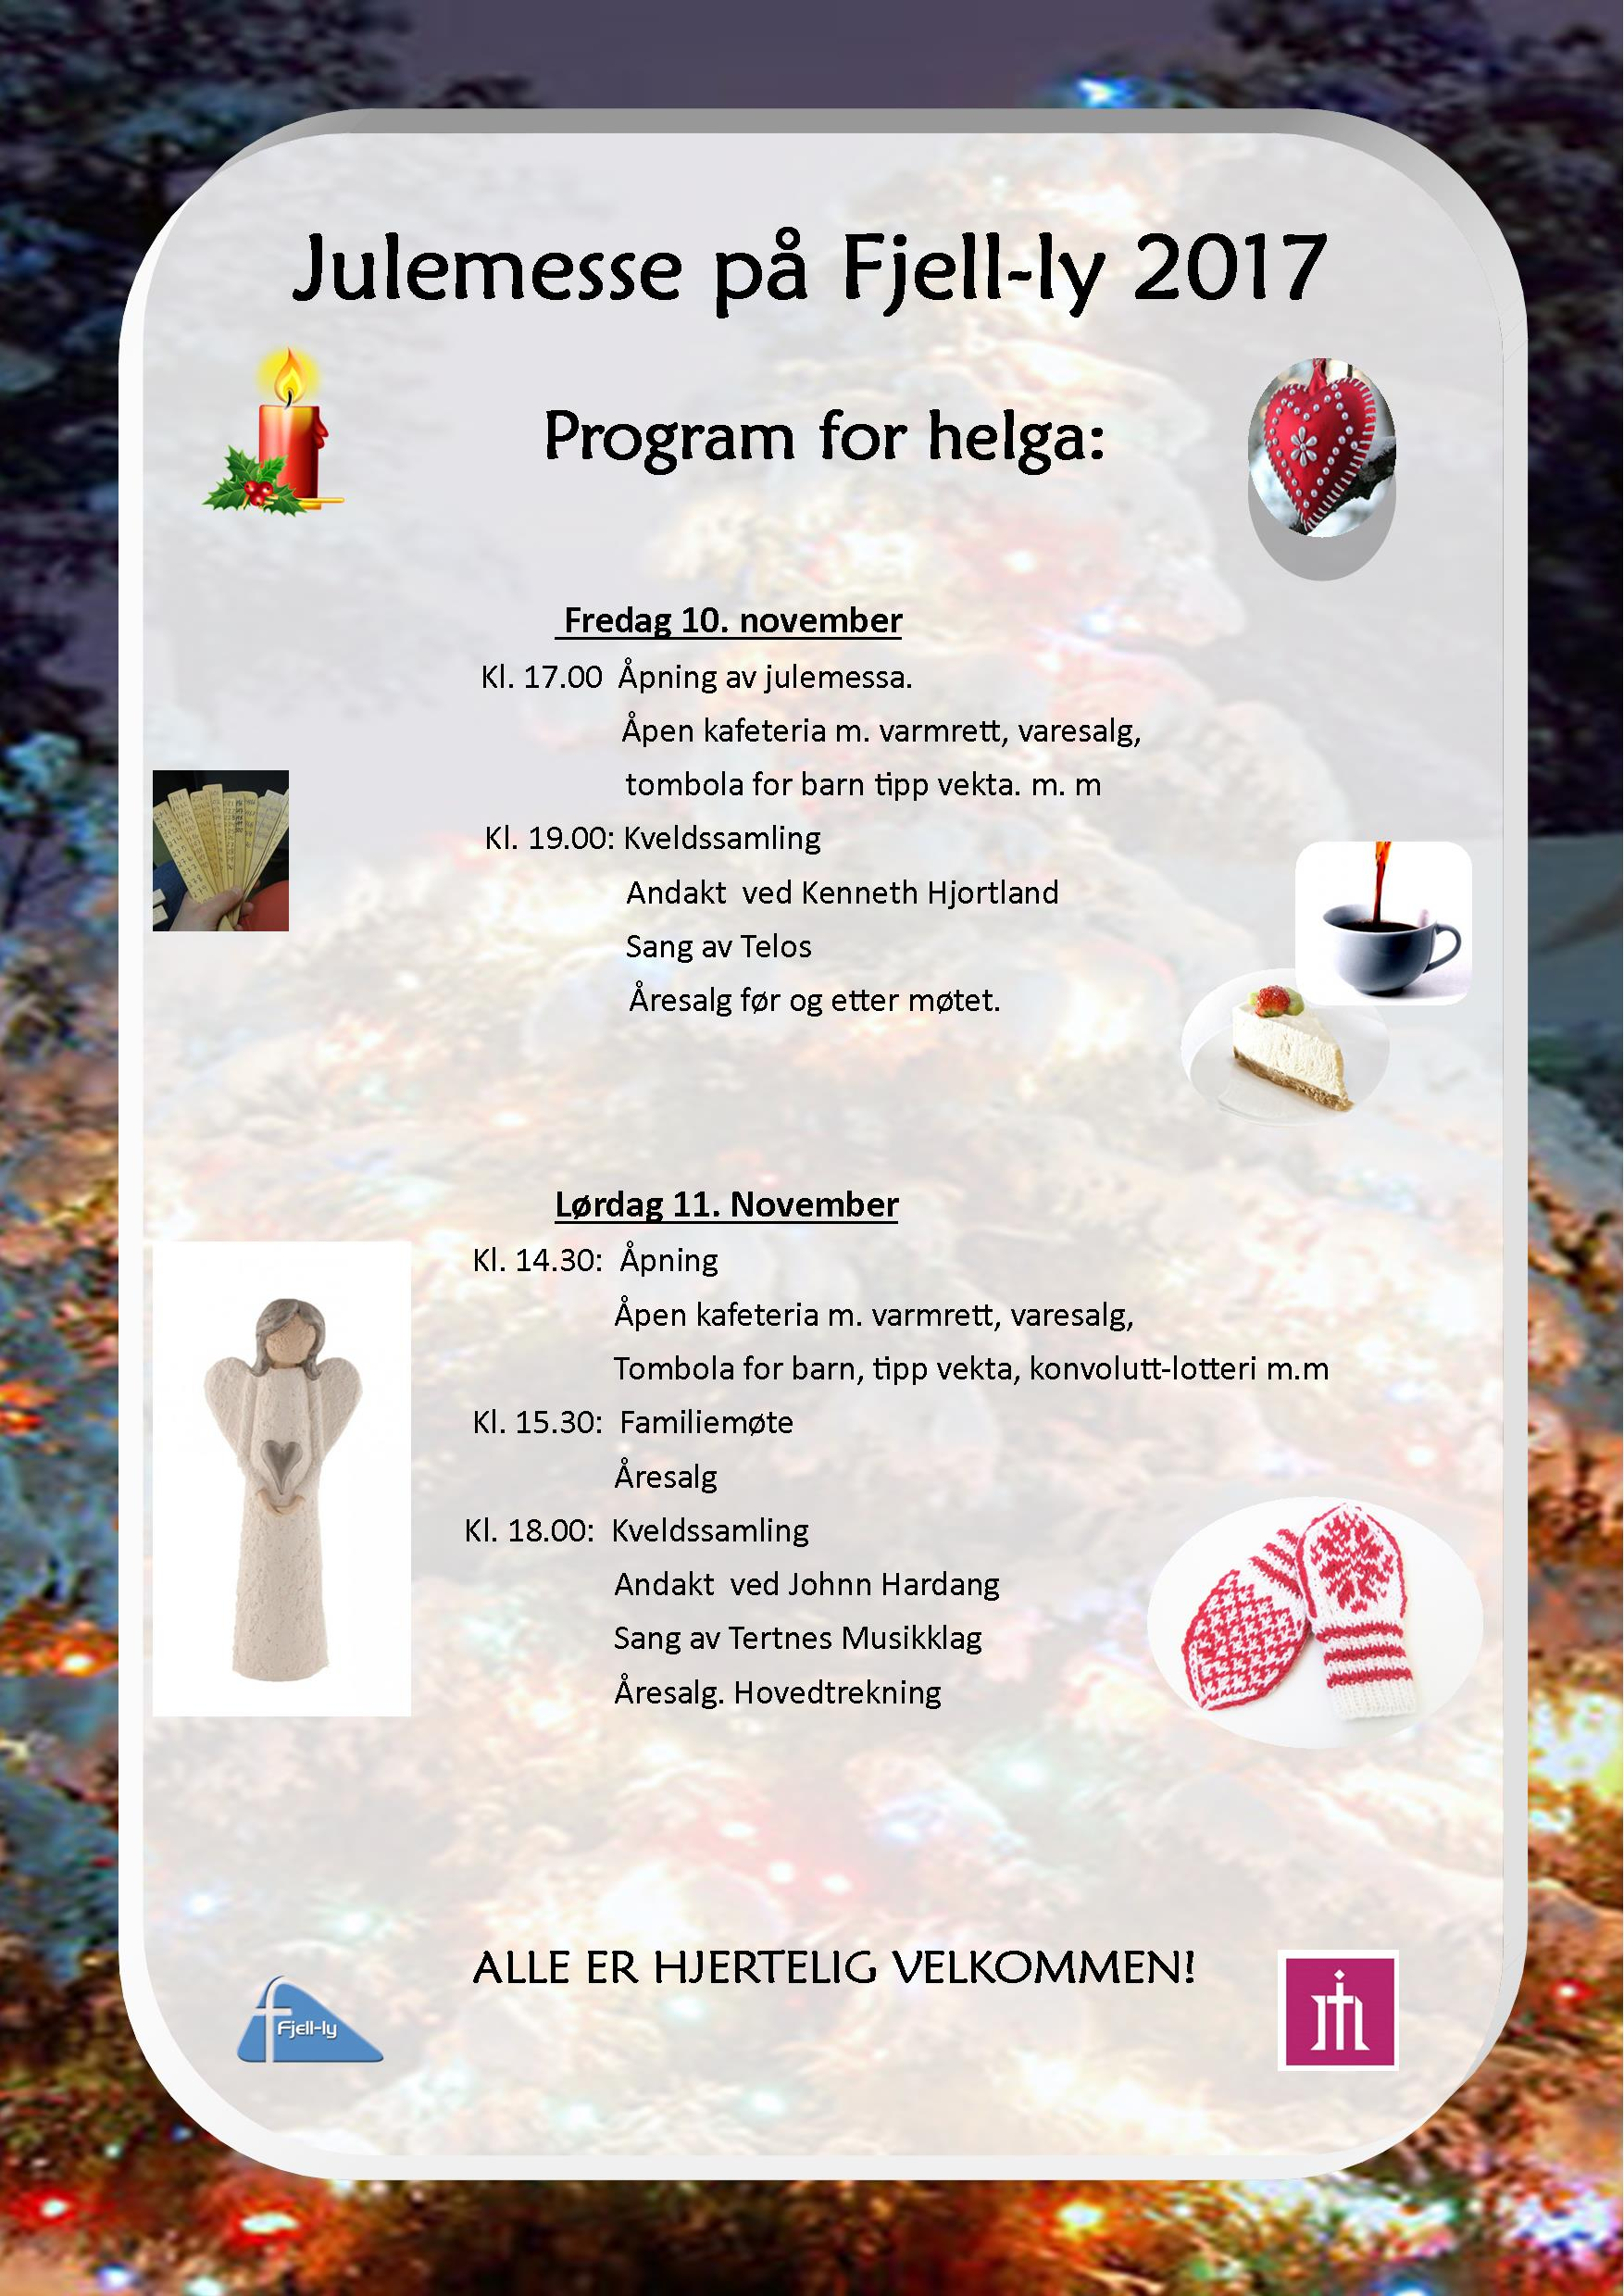 Plakat julemessa 2017 program